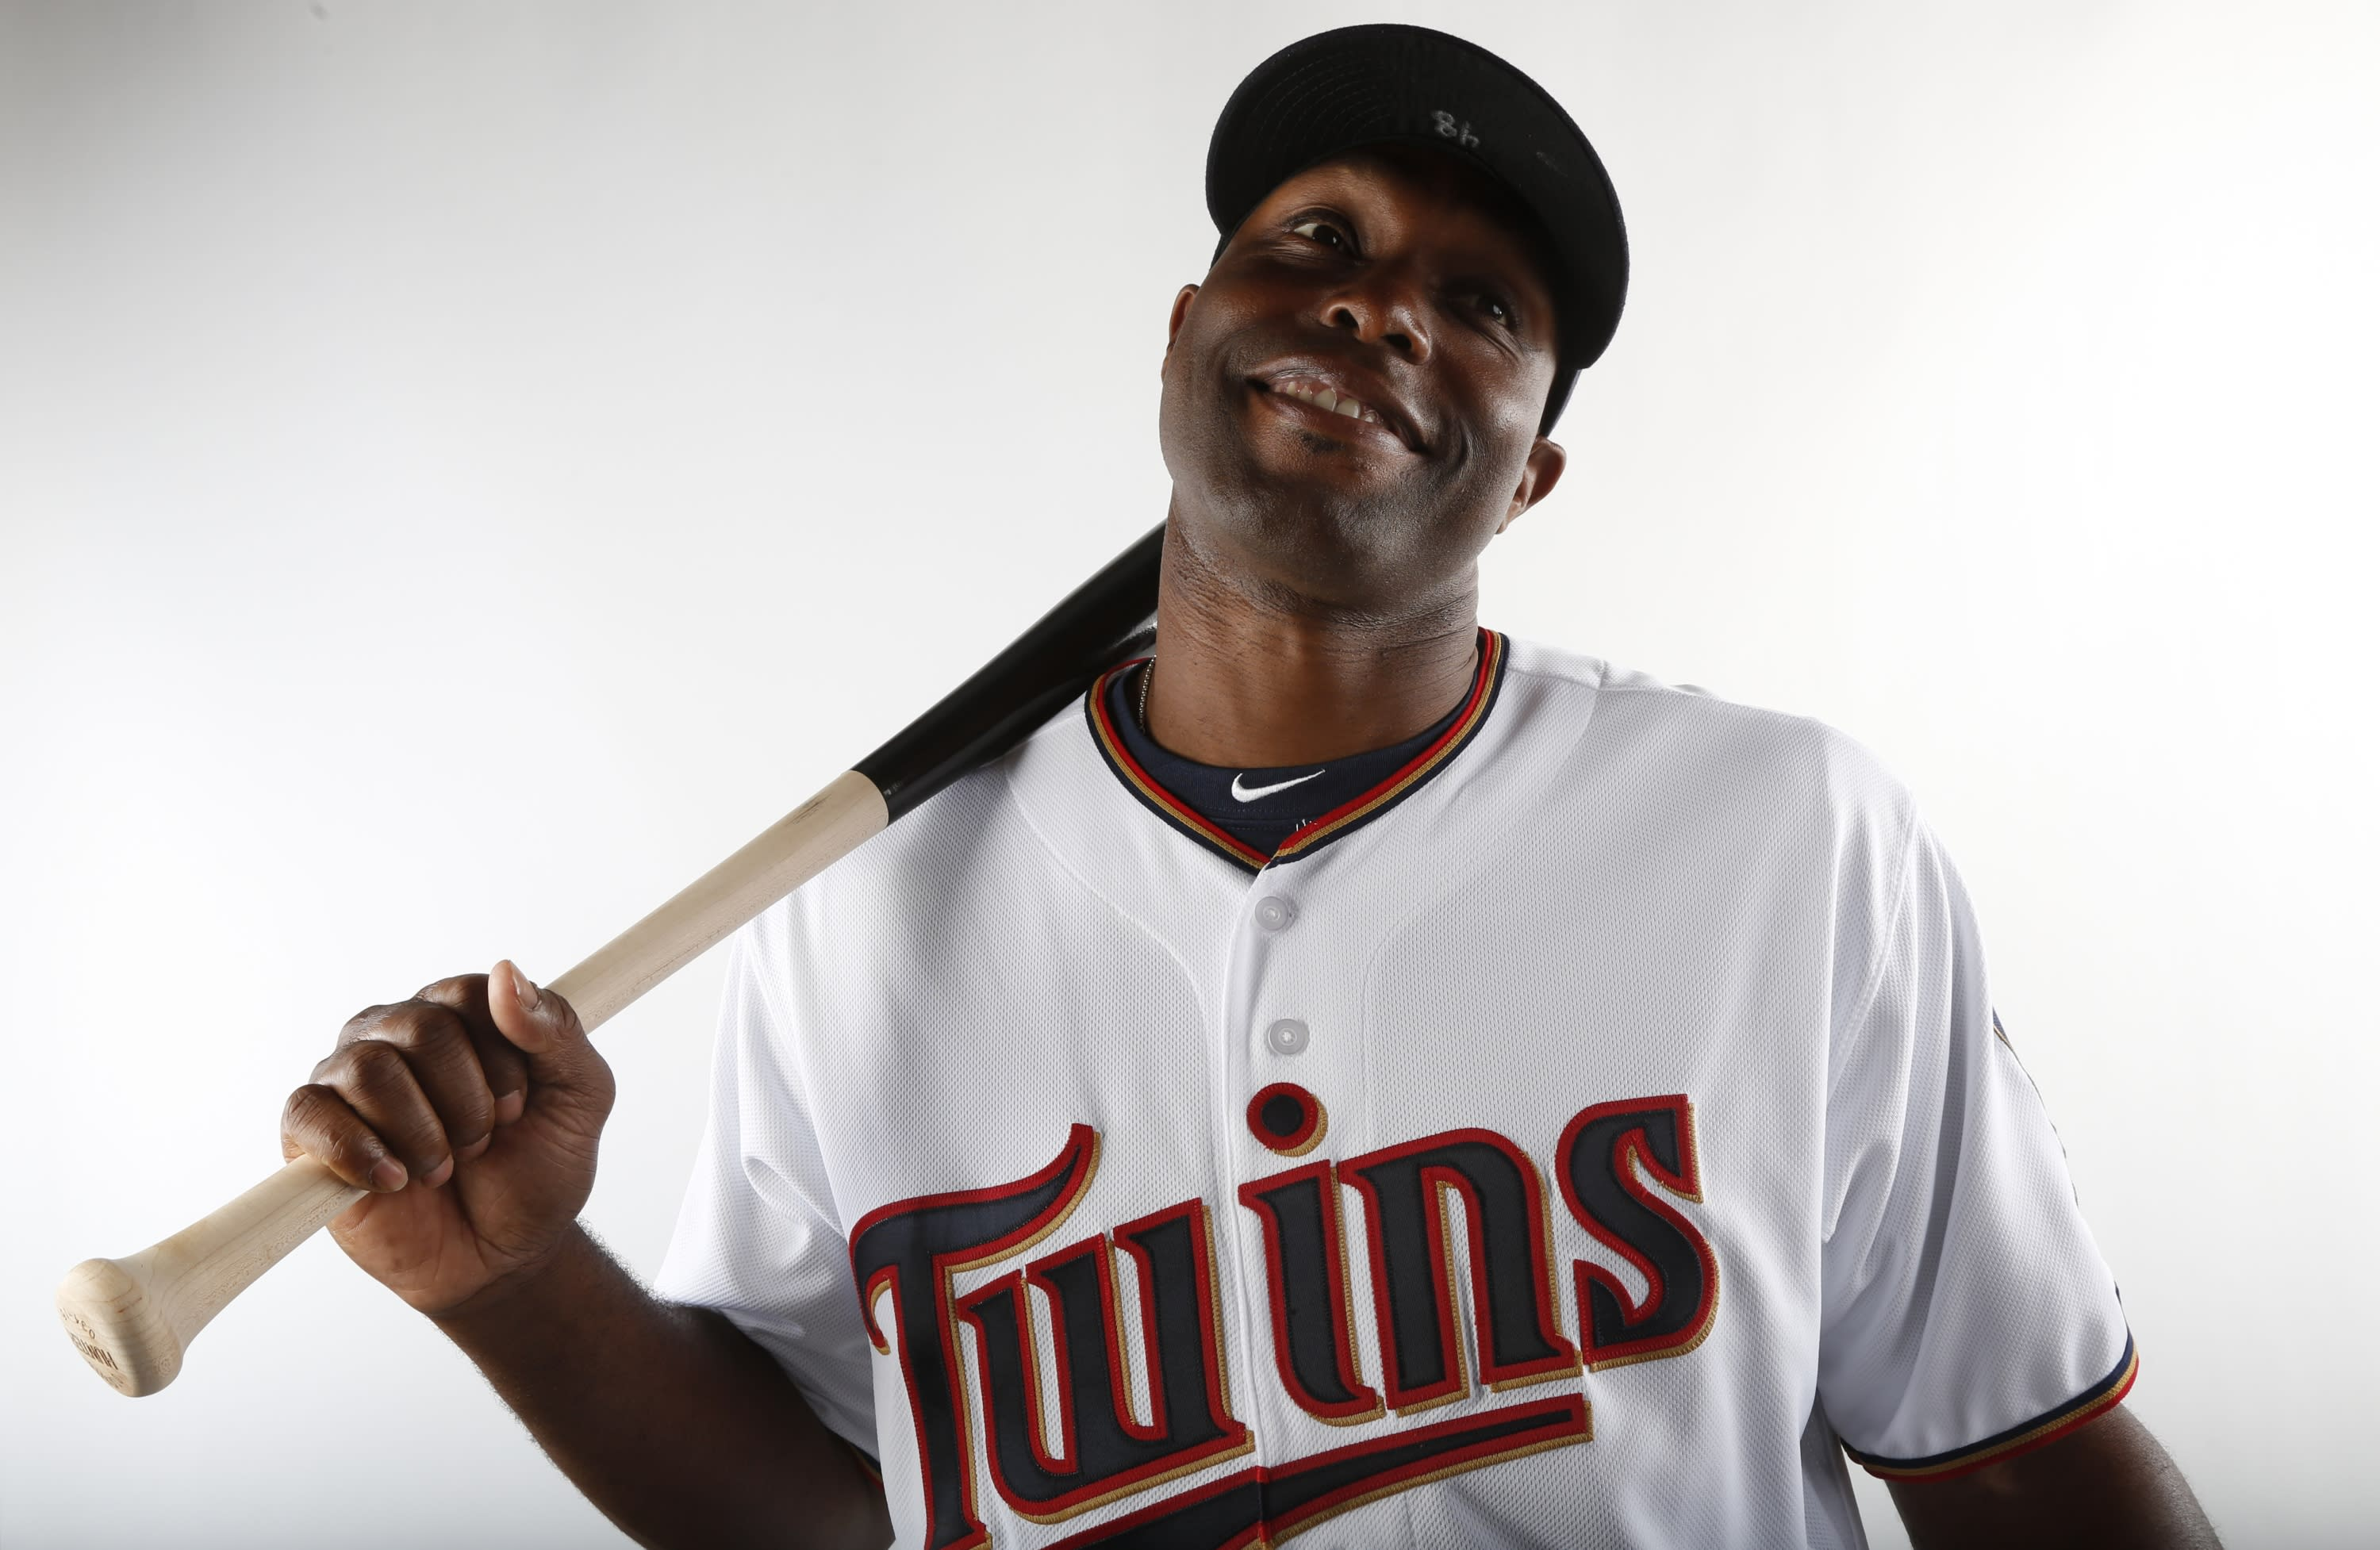 Torii Hunter offers apology, explanation for tweet about Floyd Mayweather